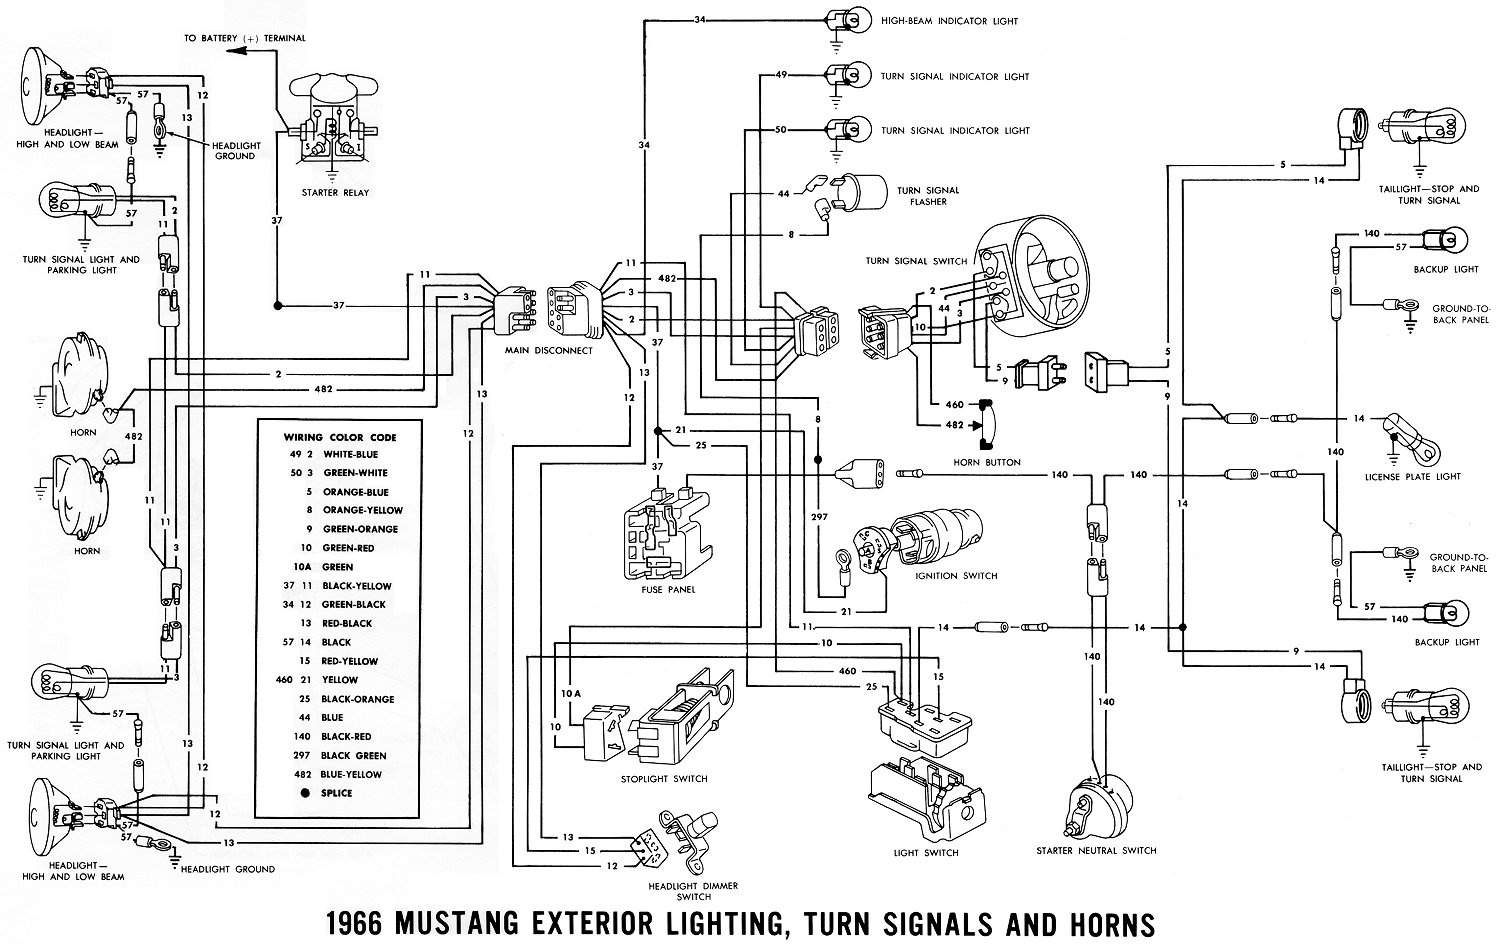 1966 mustang ignition switch wiring diagram